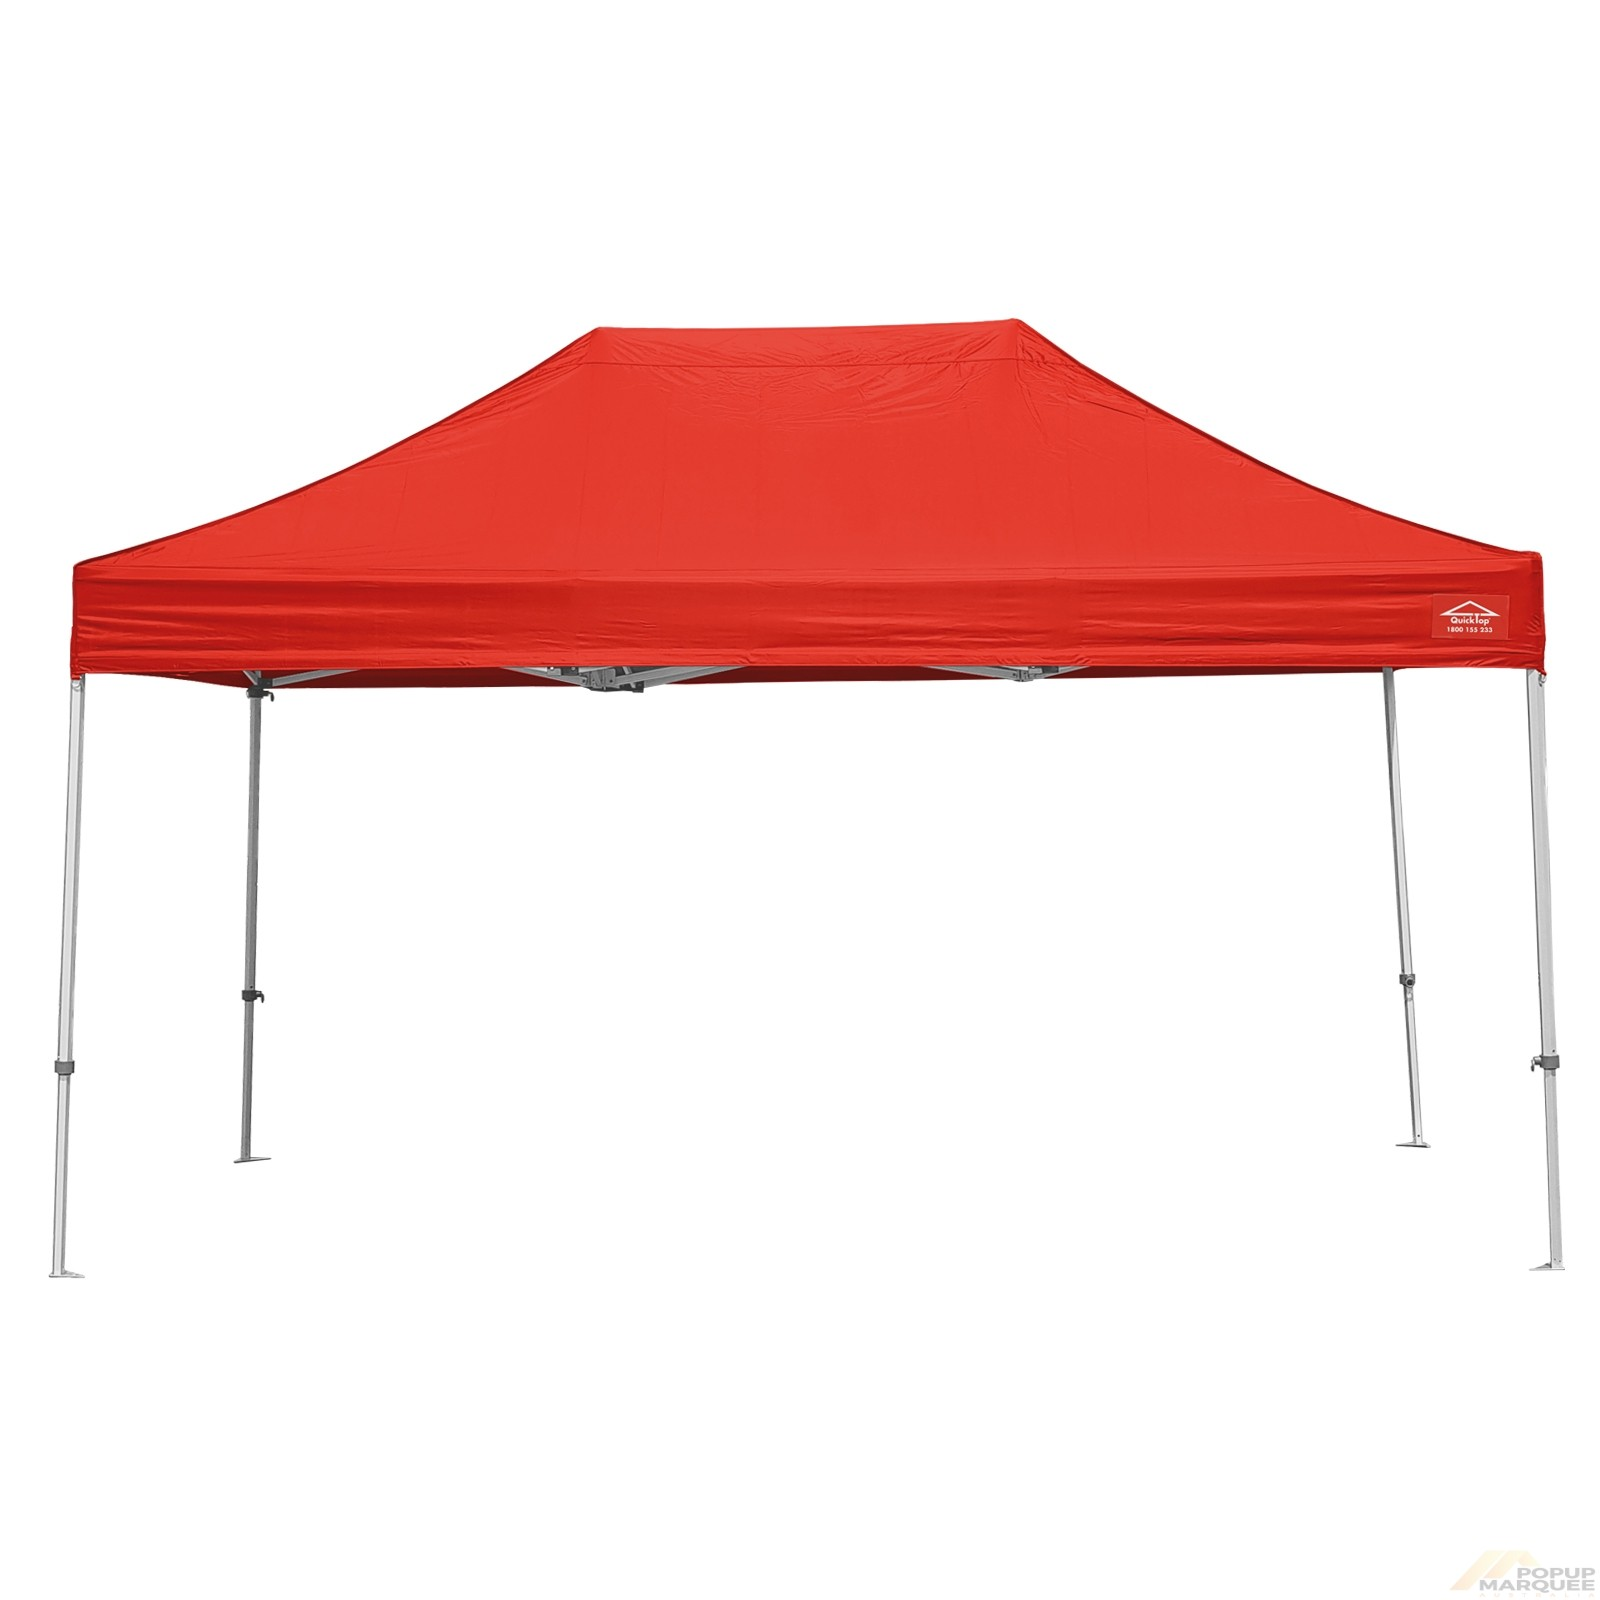 QuickTop 3x4.5m Red Pop Up Marquee